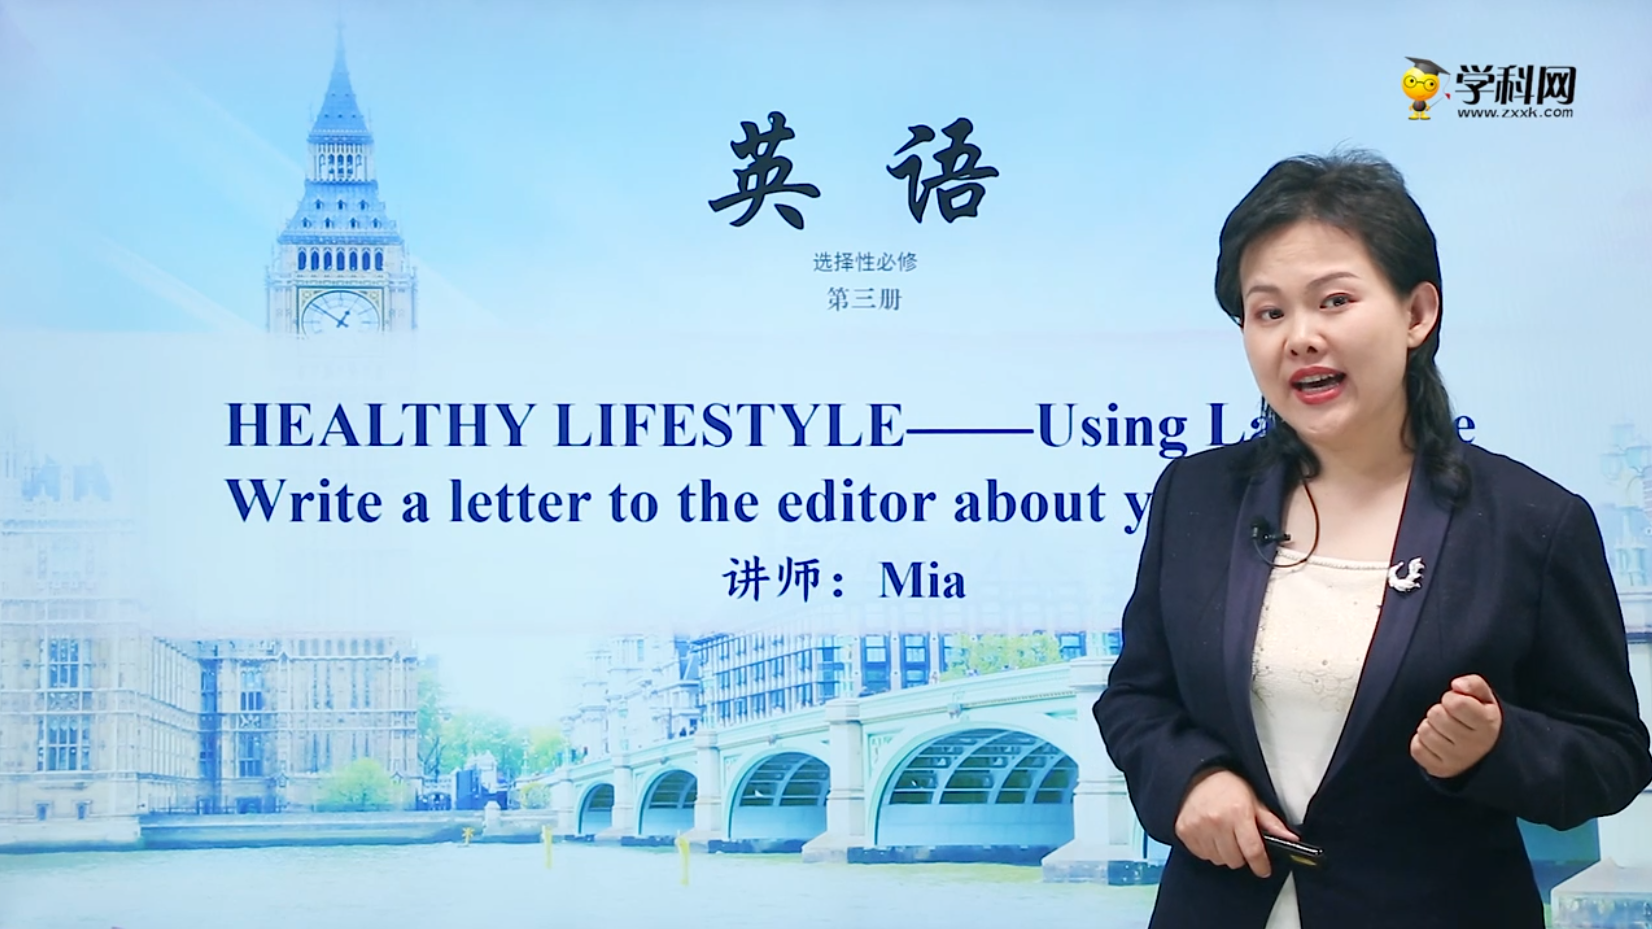 period 5 Using Language Write a letter to the editor about your lifestyle(Unit 2 Healthy lifestyle)-高中英语选择性必修3(新教材同步)